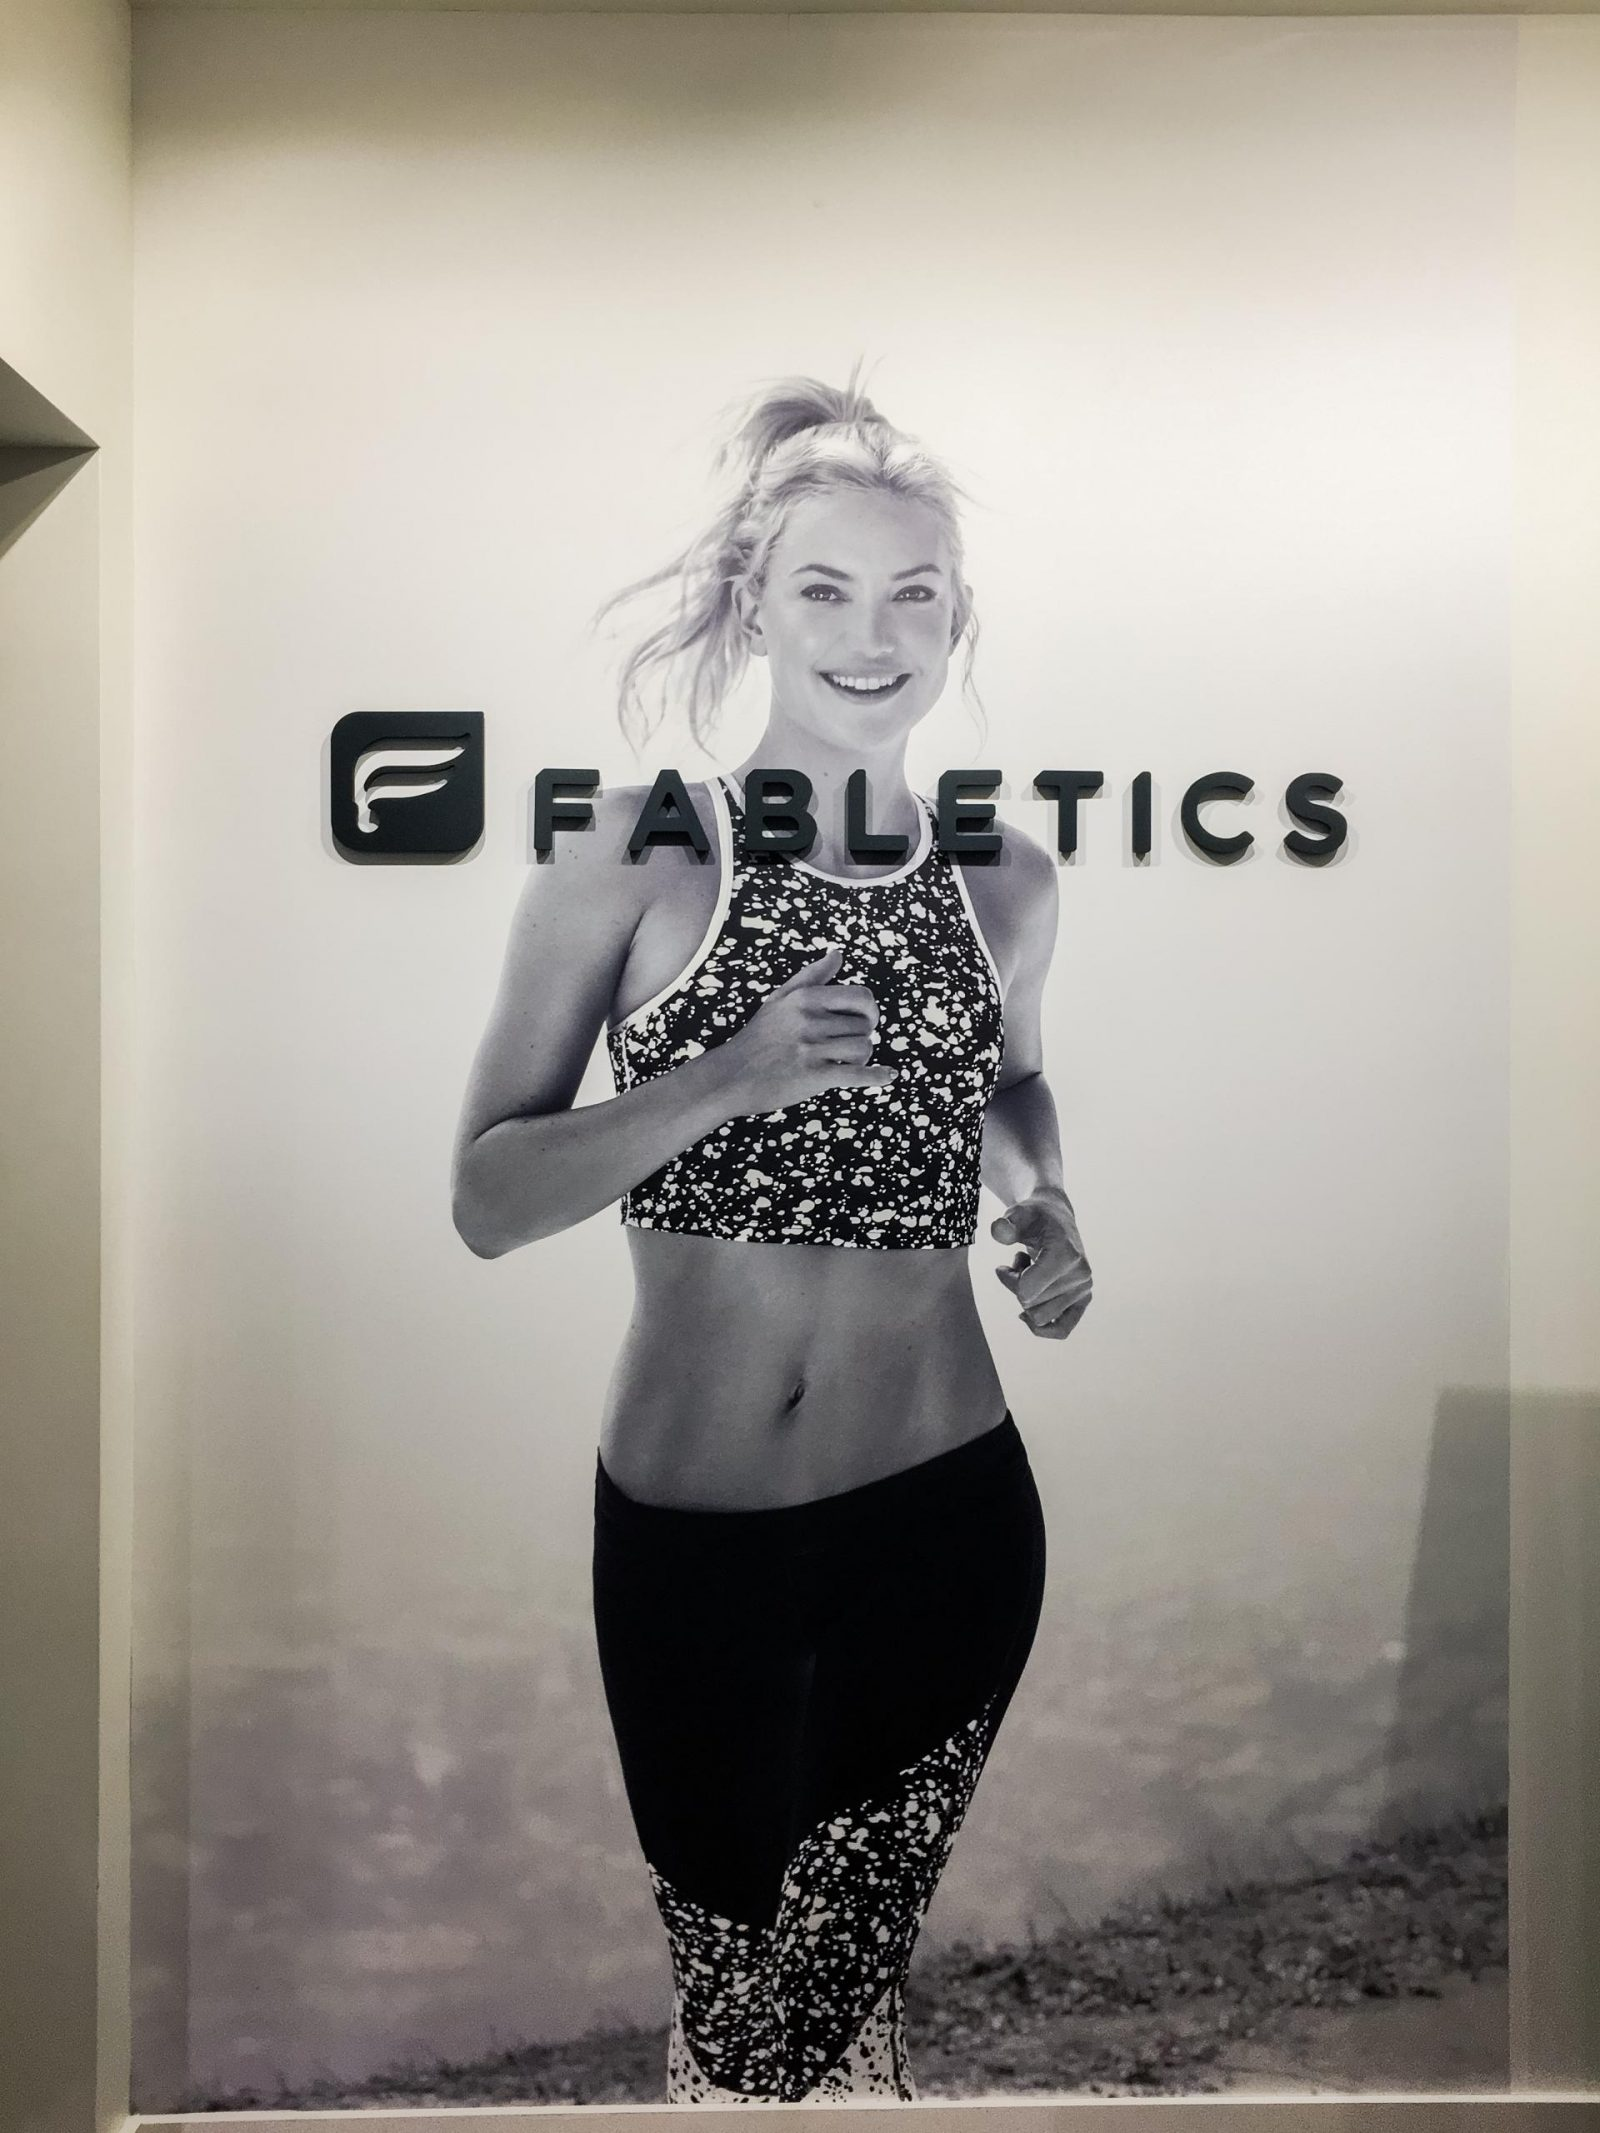 Kate Hudson is the ultimate body goals. Lean, Fit, and beautiful! Fabletics at Woodfield Mall in Schaumburg, Illinois! The Best Woodfield Mall Stores in Schaumburg Illinois. Woodfield Mall is one of the biggest malls in America, let me help you decide where to stop first!